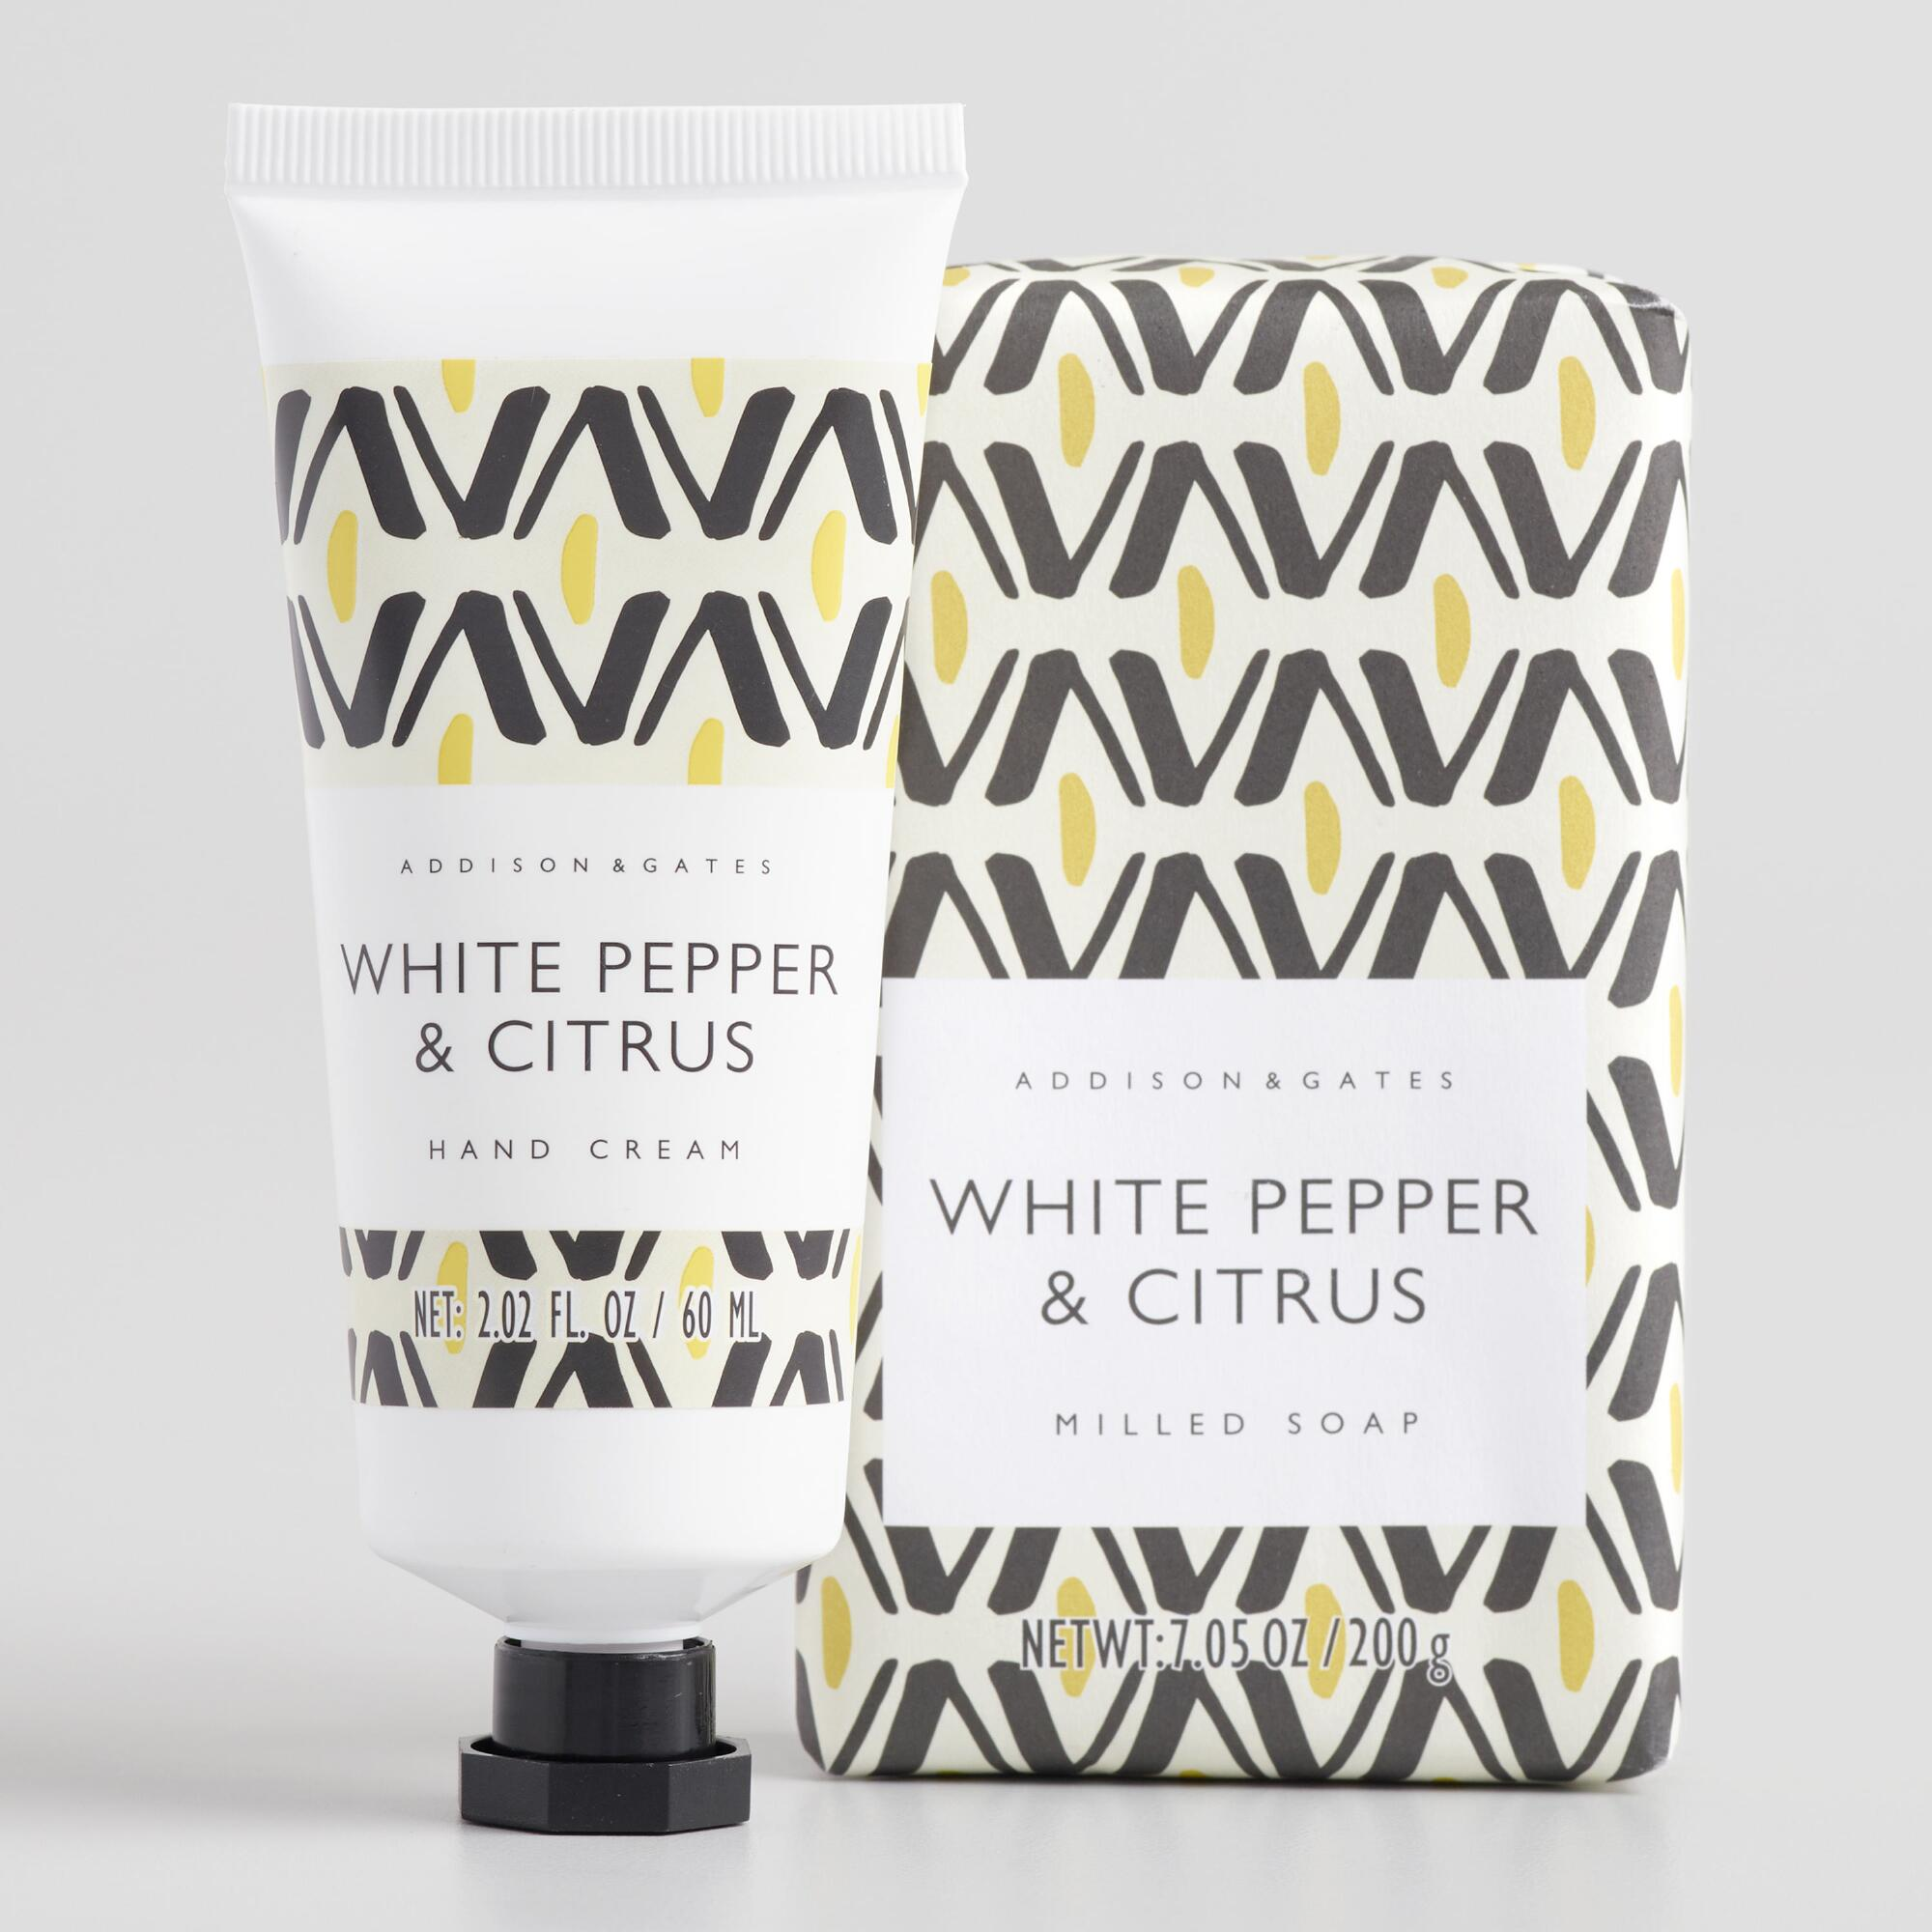 A&G Mid Century White Pepper and Citrus Body Care Collection by World Market